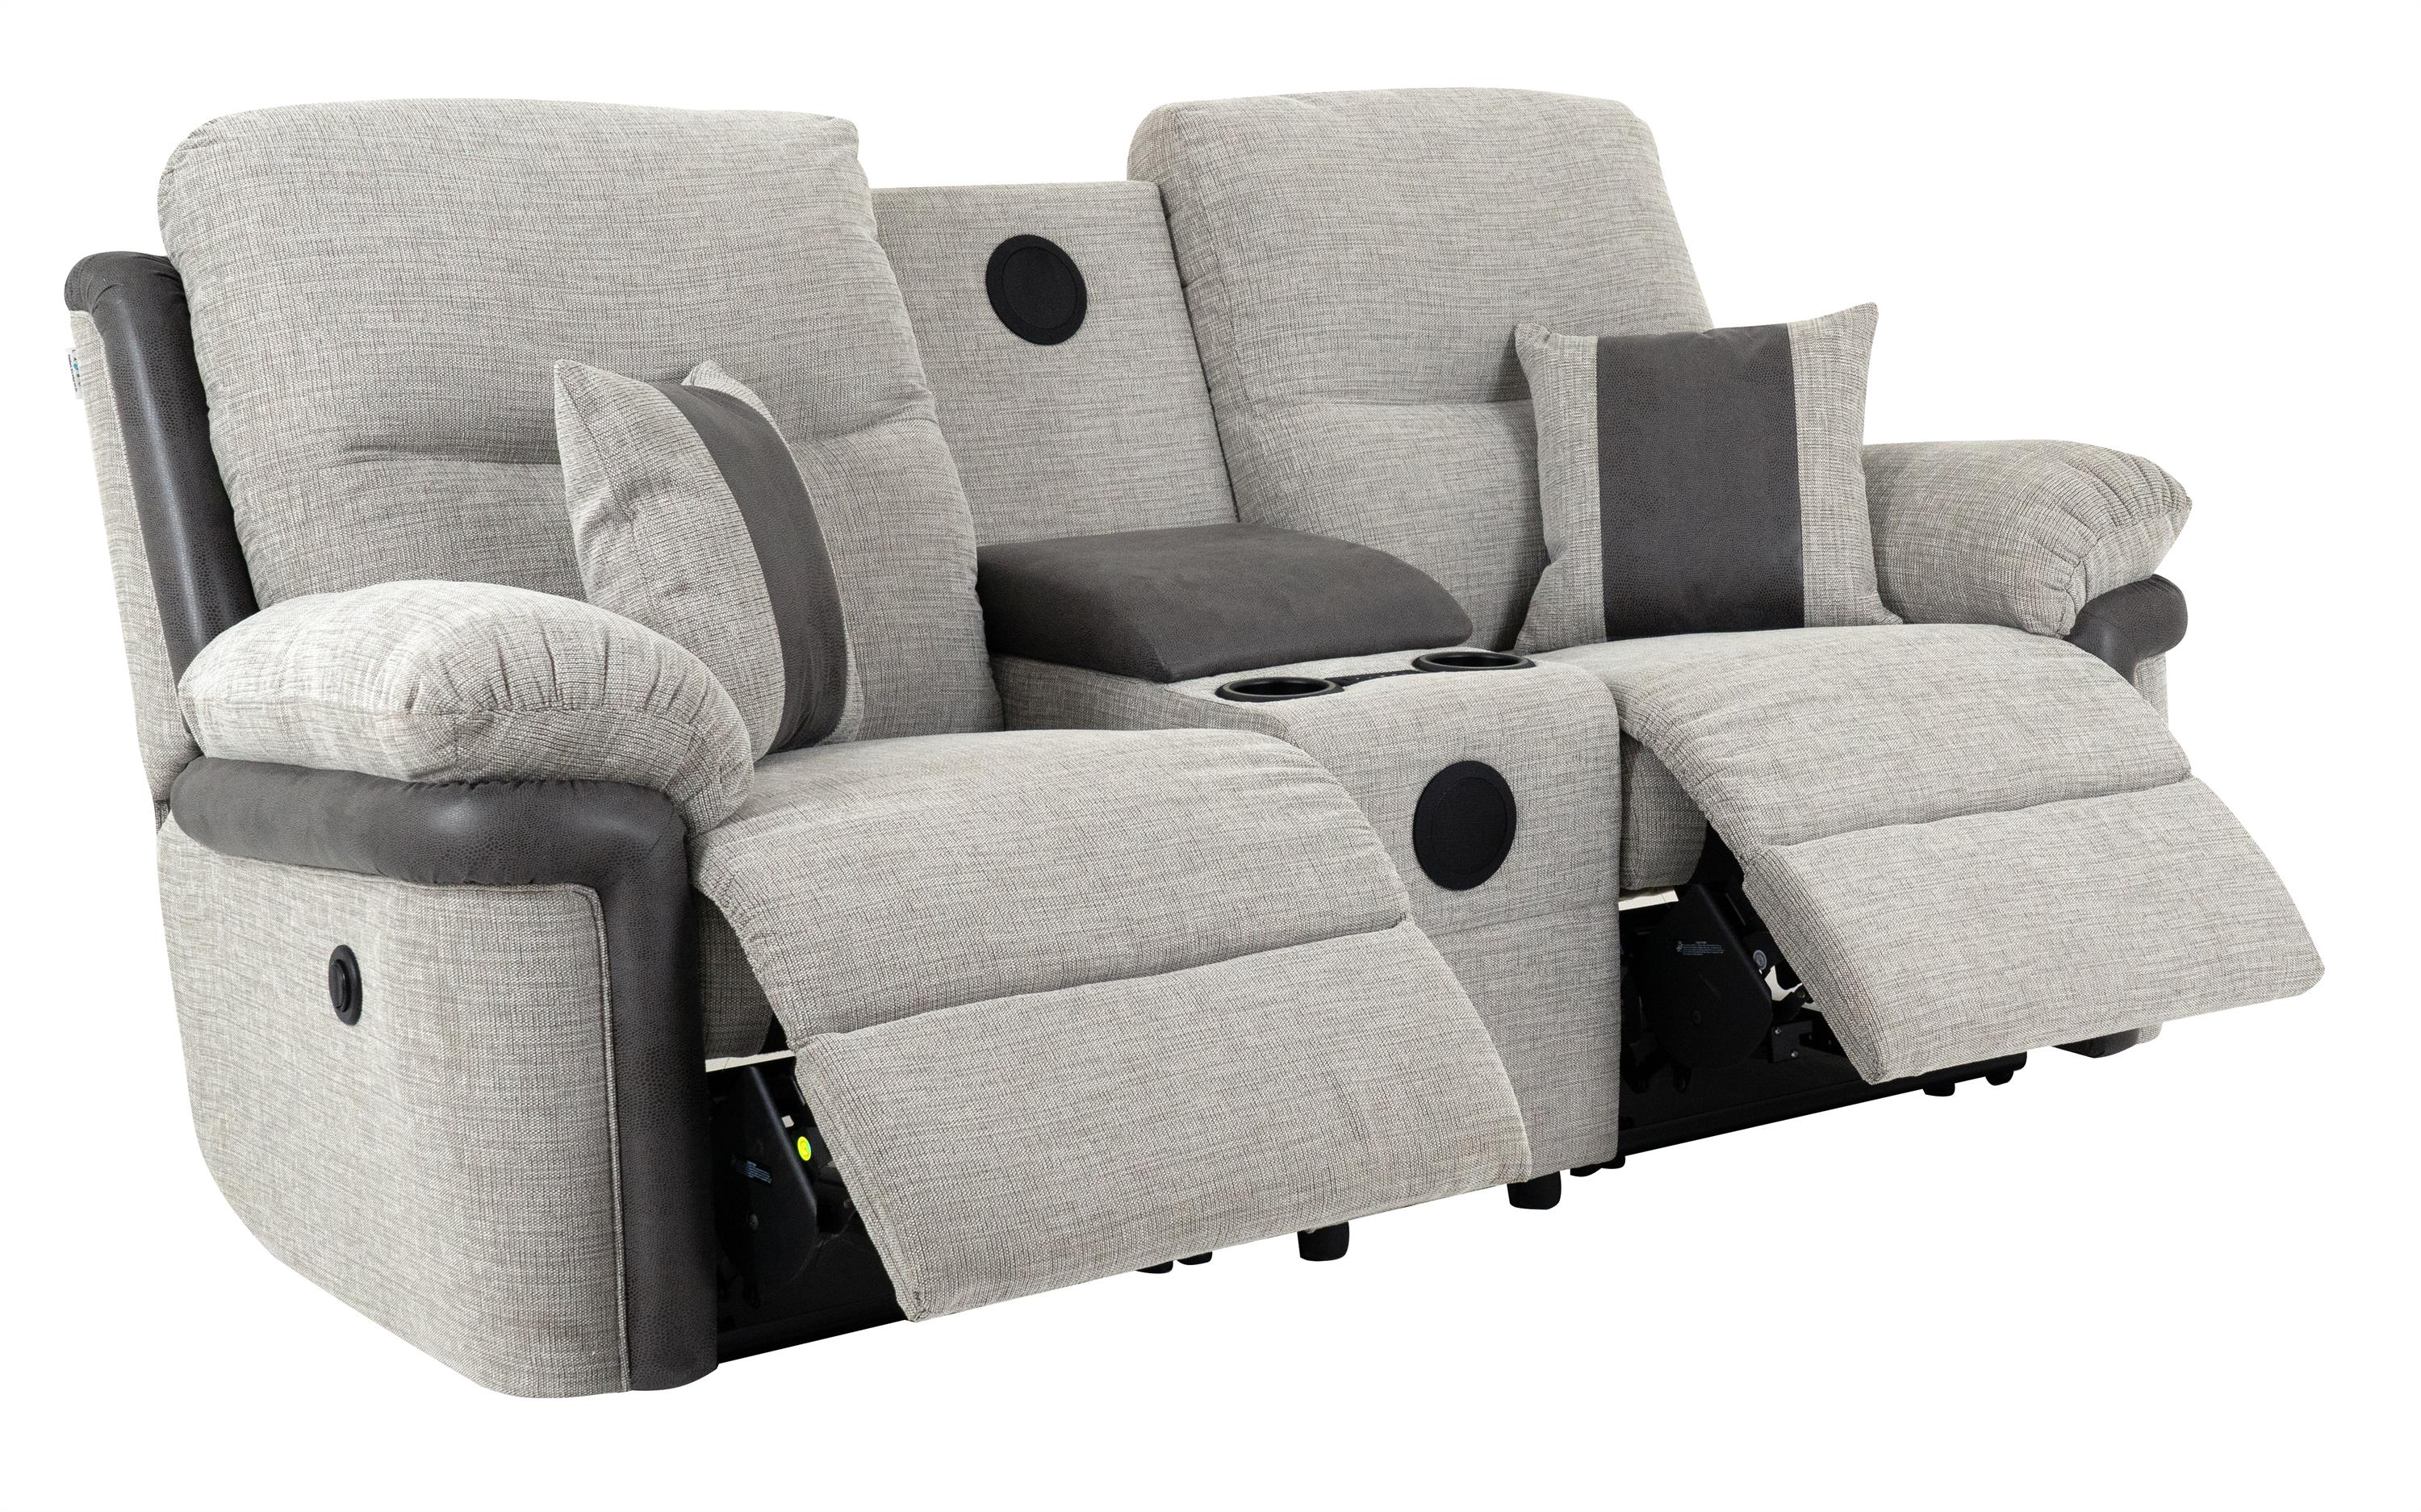 La-Z-Boy Nevada 2 Seater Power Recliner Sofa With Sound, , large